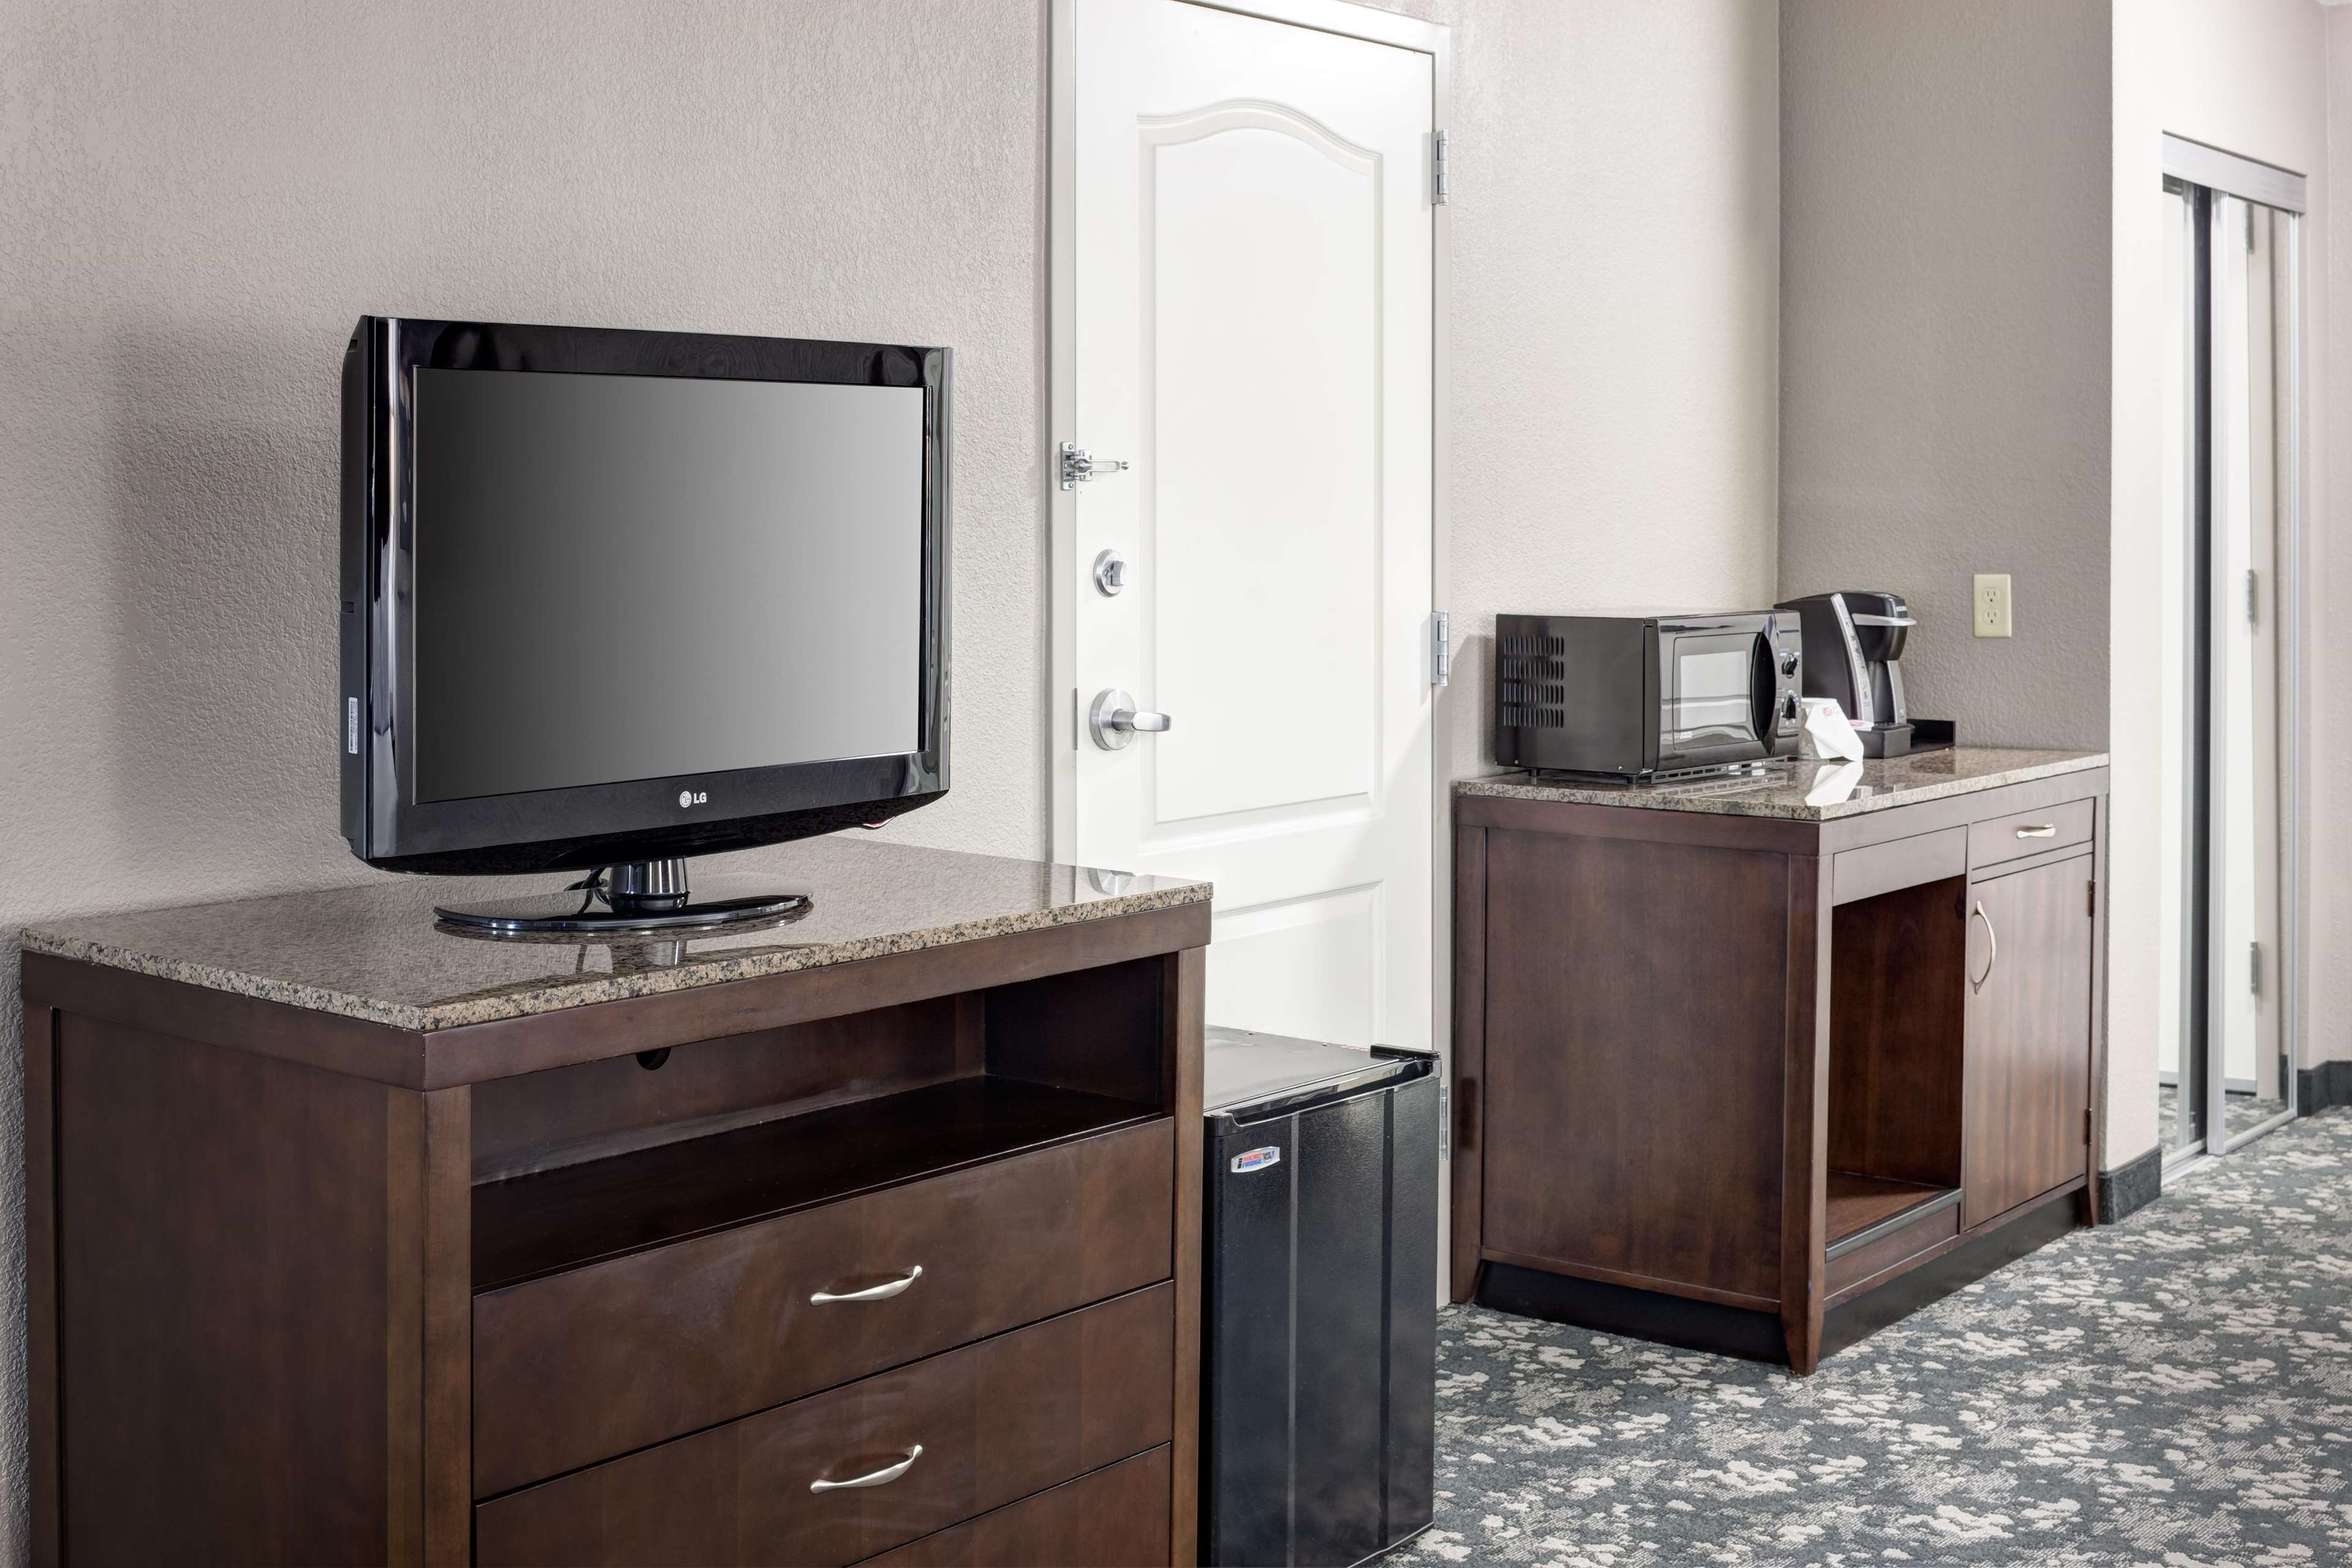 Two Queen Room Entertainment Center